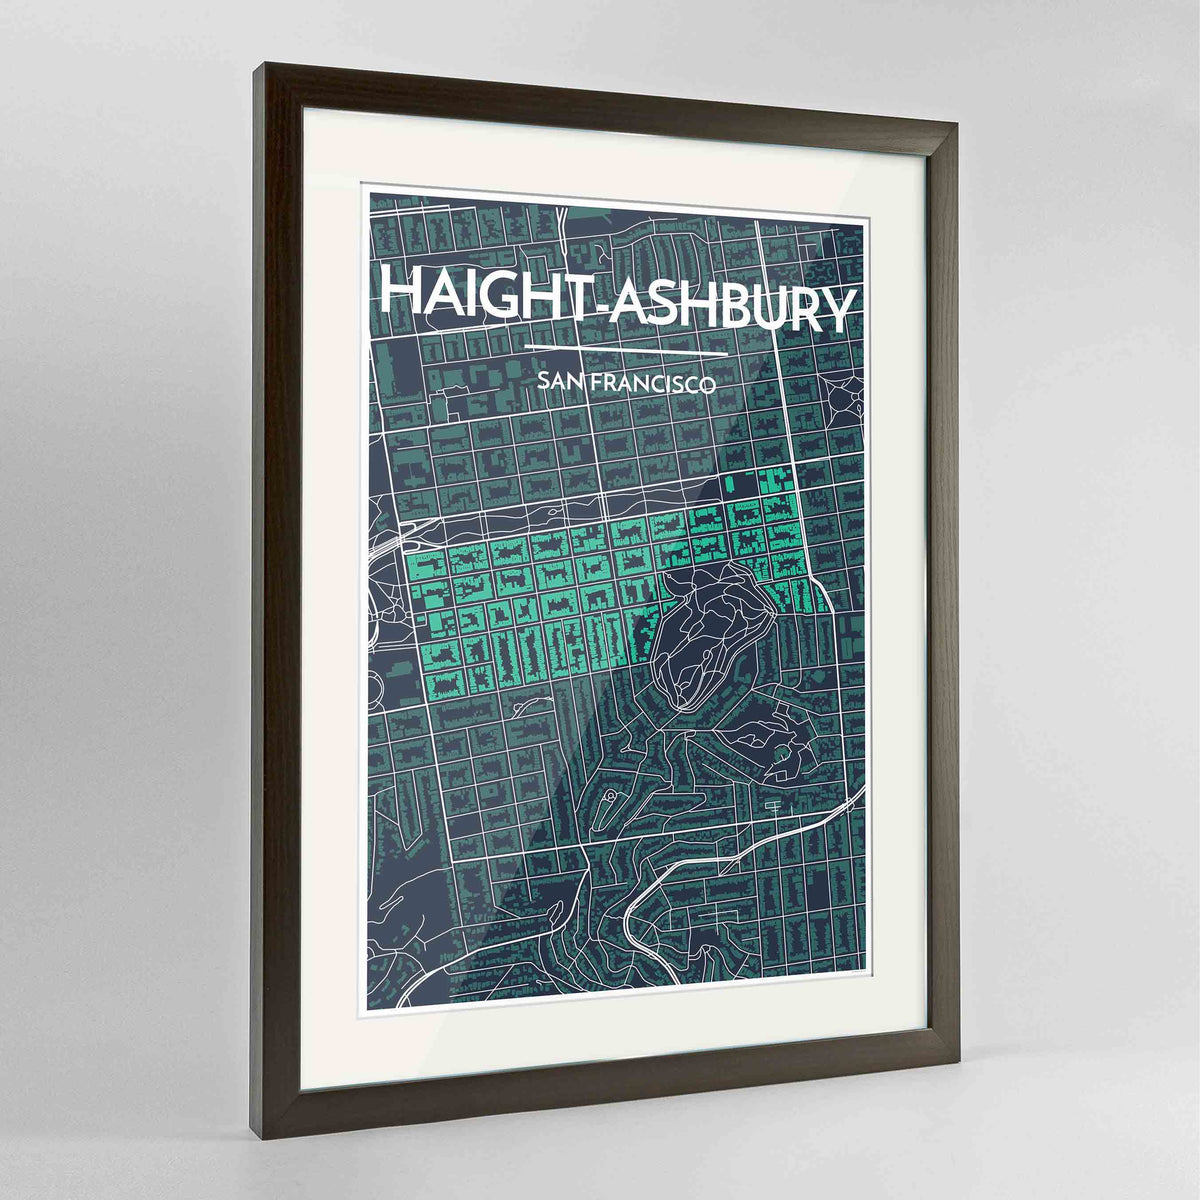 "Framed Haight-Ashbury San Francisco Map Art Print 24x36"" Contemporary Walnut frame Point Two Design Group"